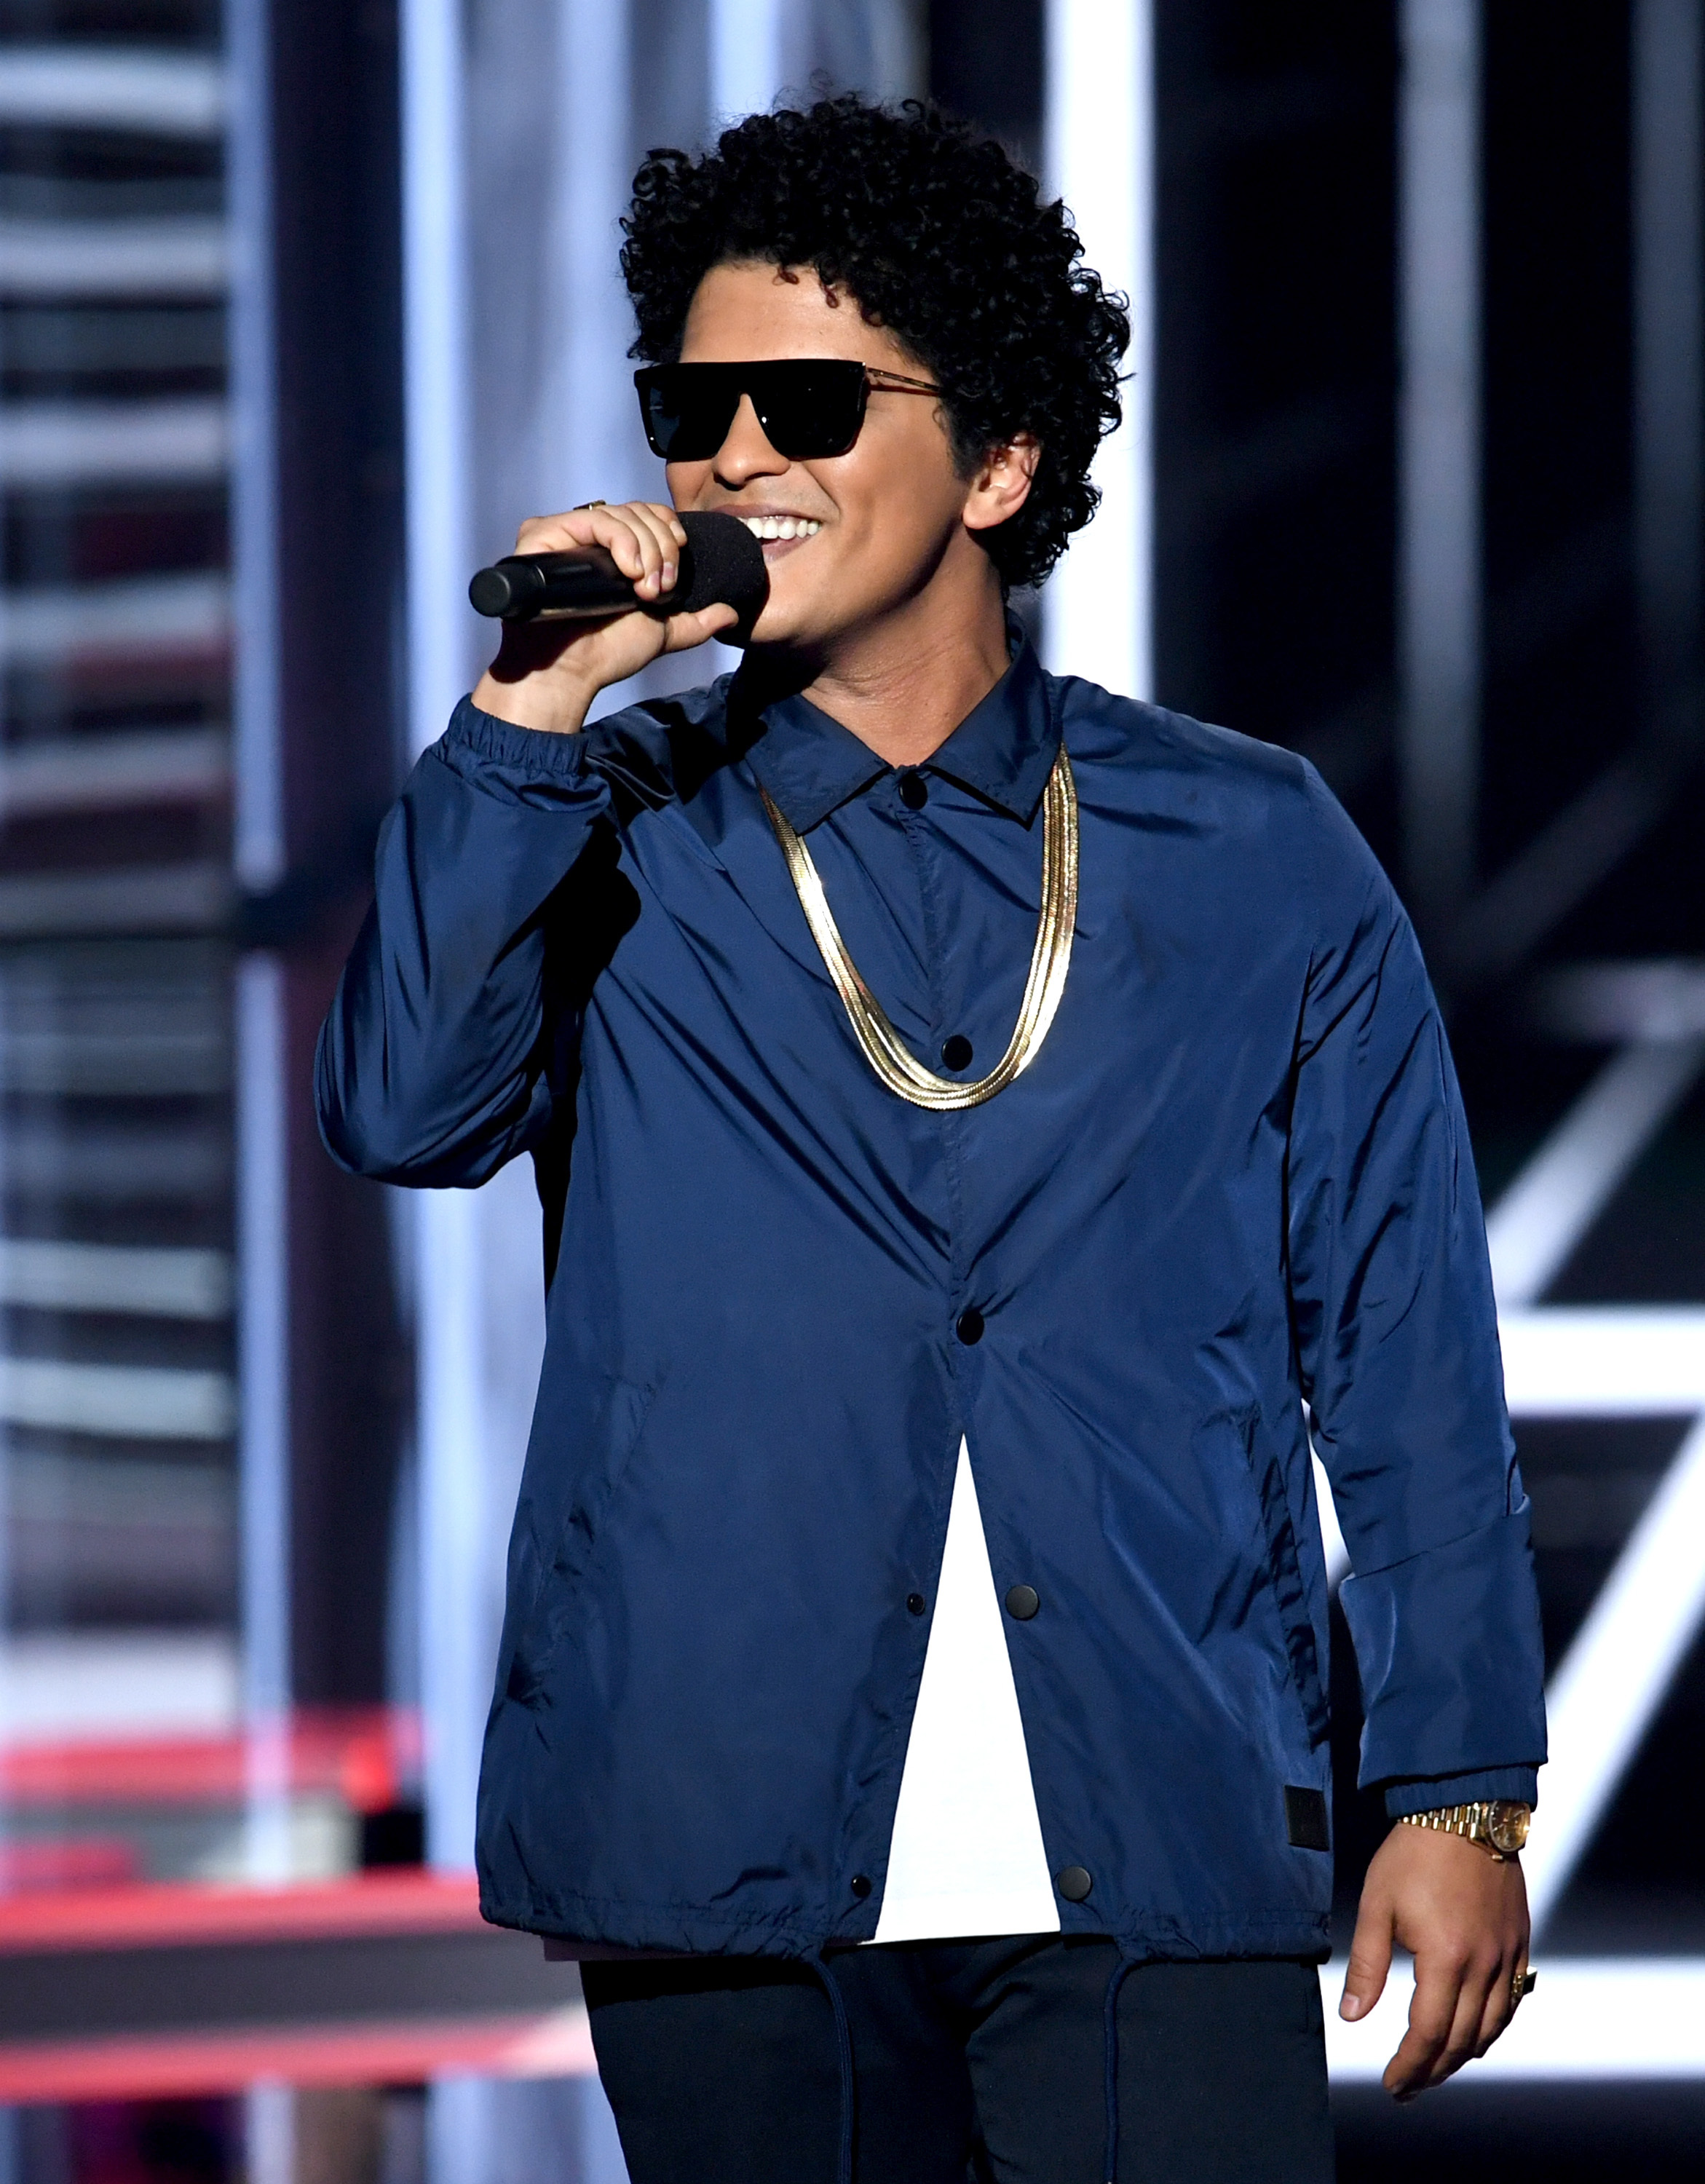 Bruno Mars speaks onstage  at the 2018 Billboard Music Awards at the MGM Grand Garden Arena on May 20, 2018 in Las Vegas, Nevada.